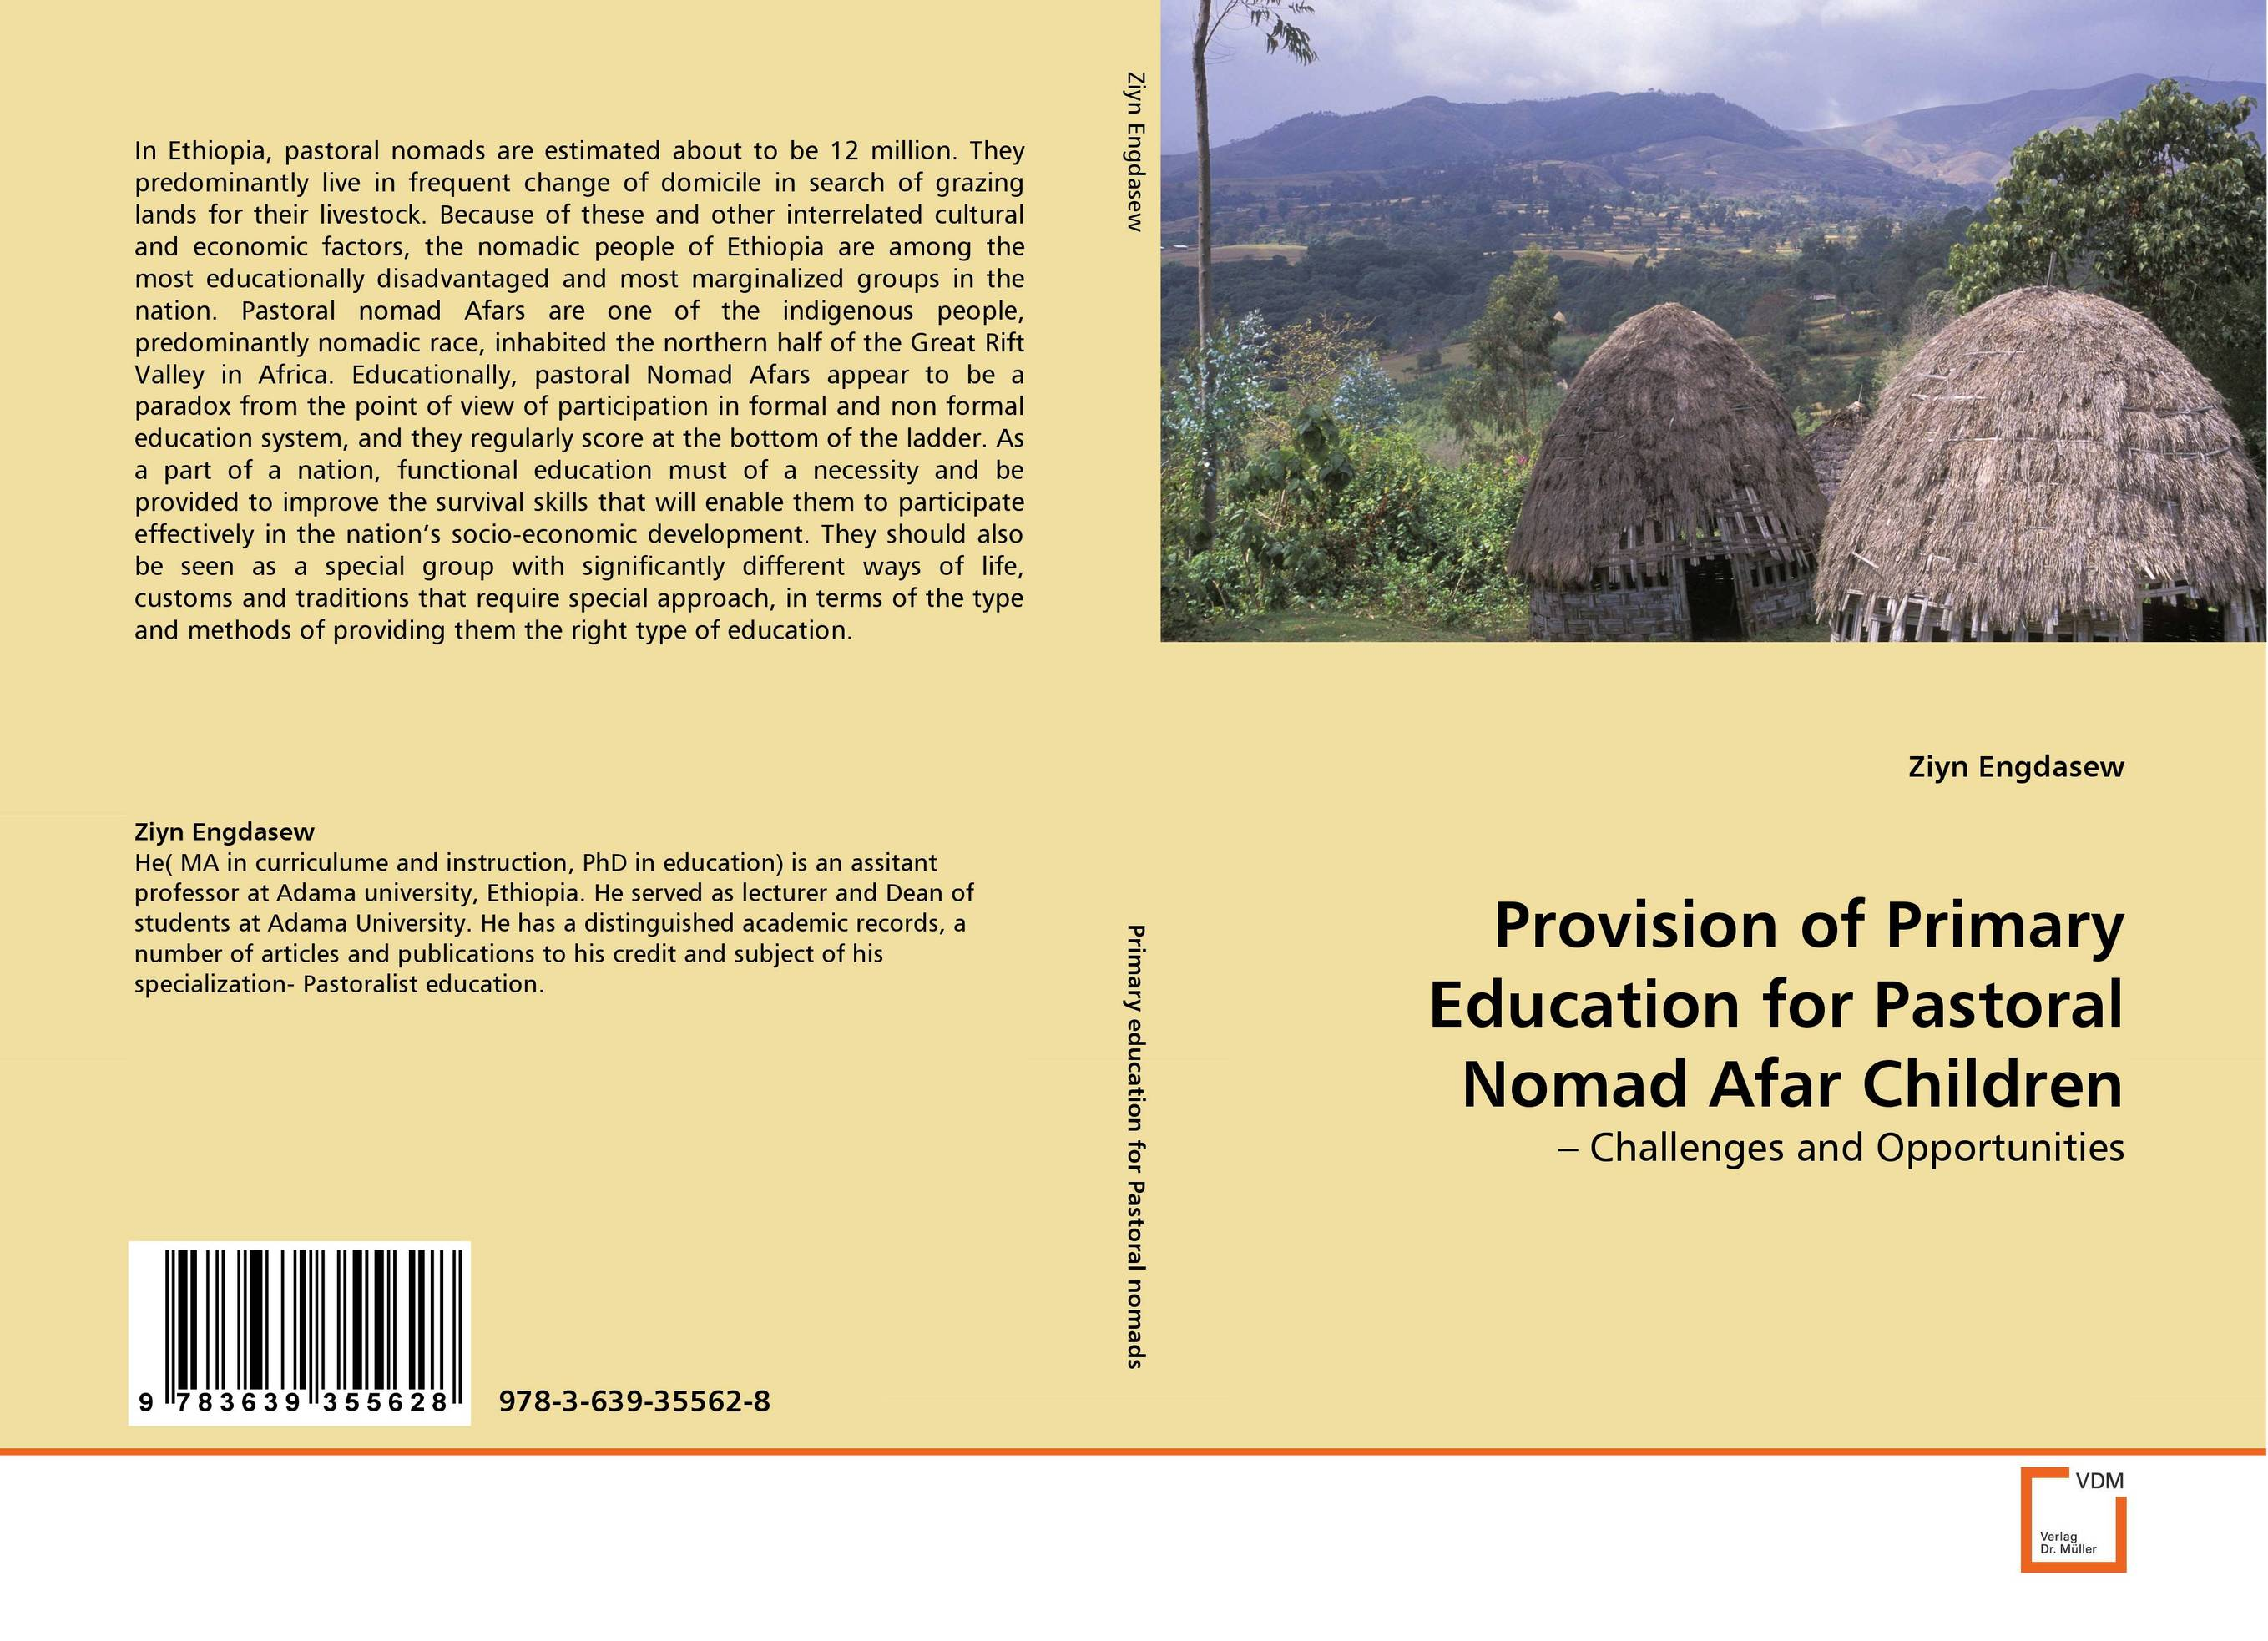 Provision of Primary Education for Pastoral Nomad Afar Children